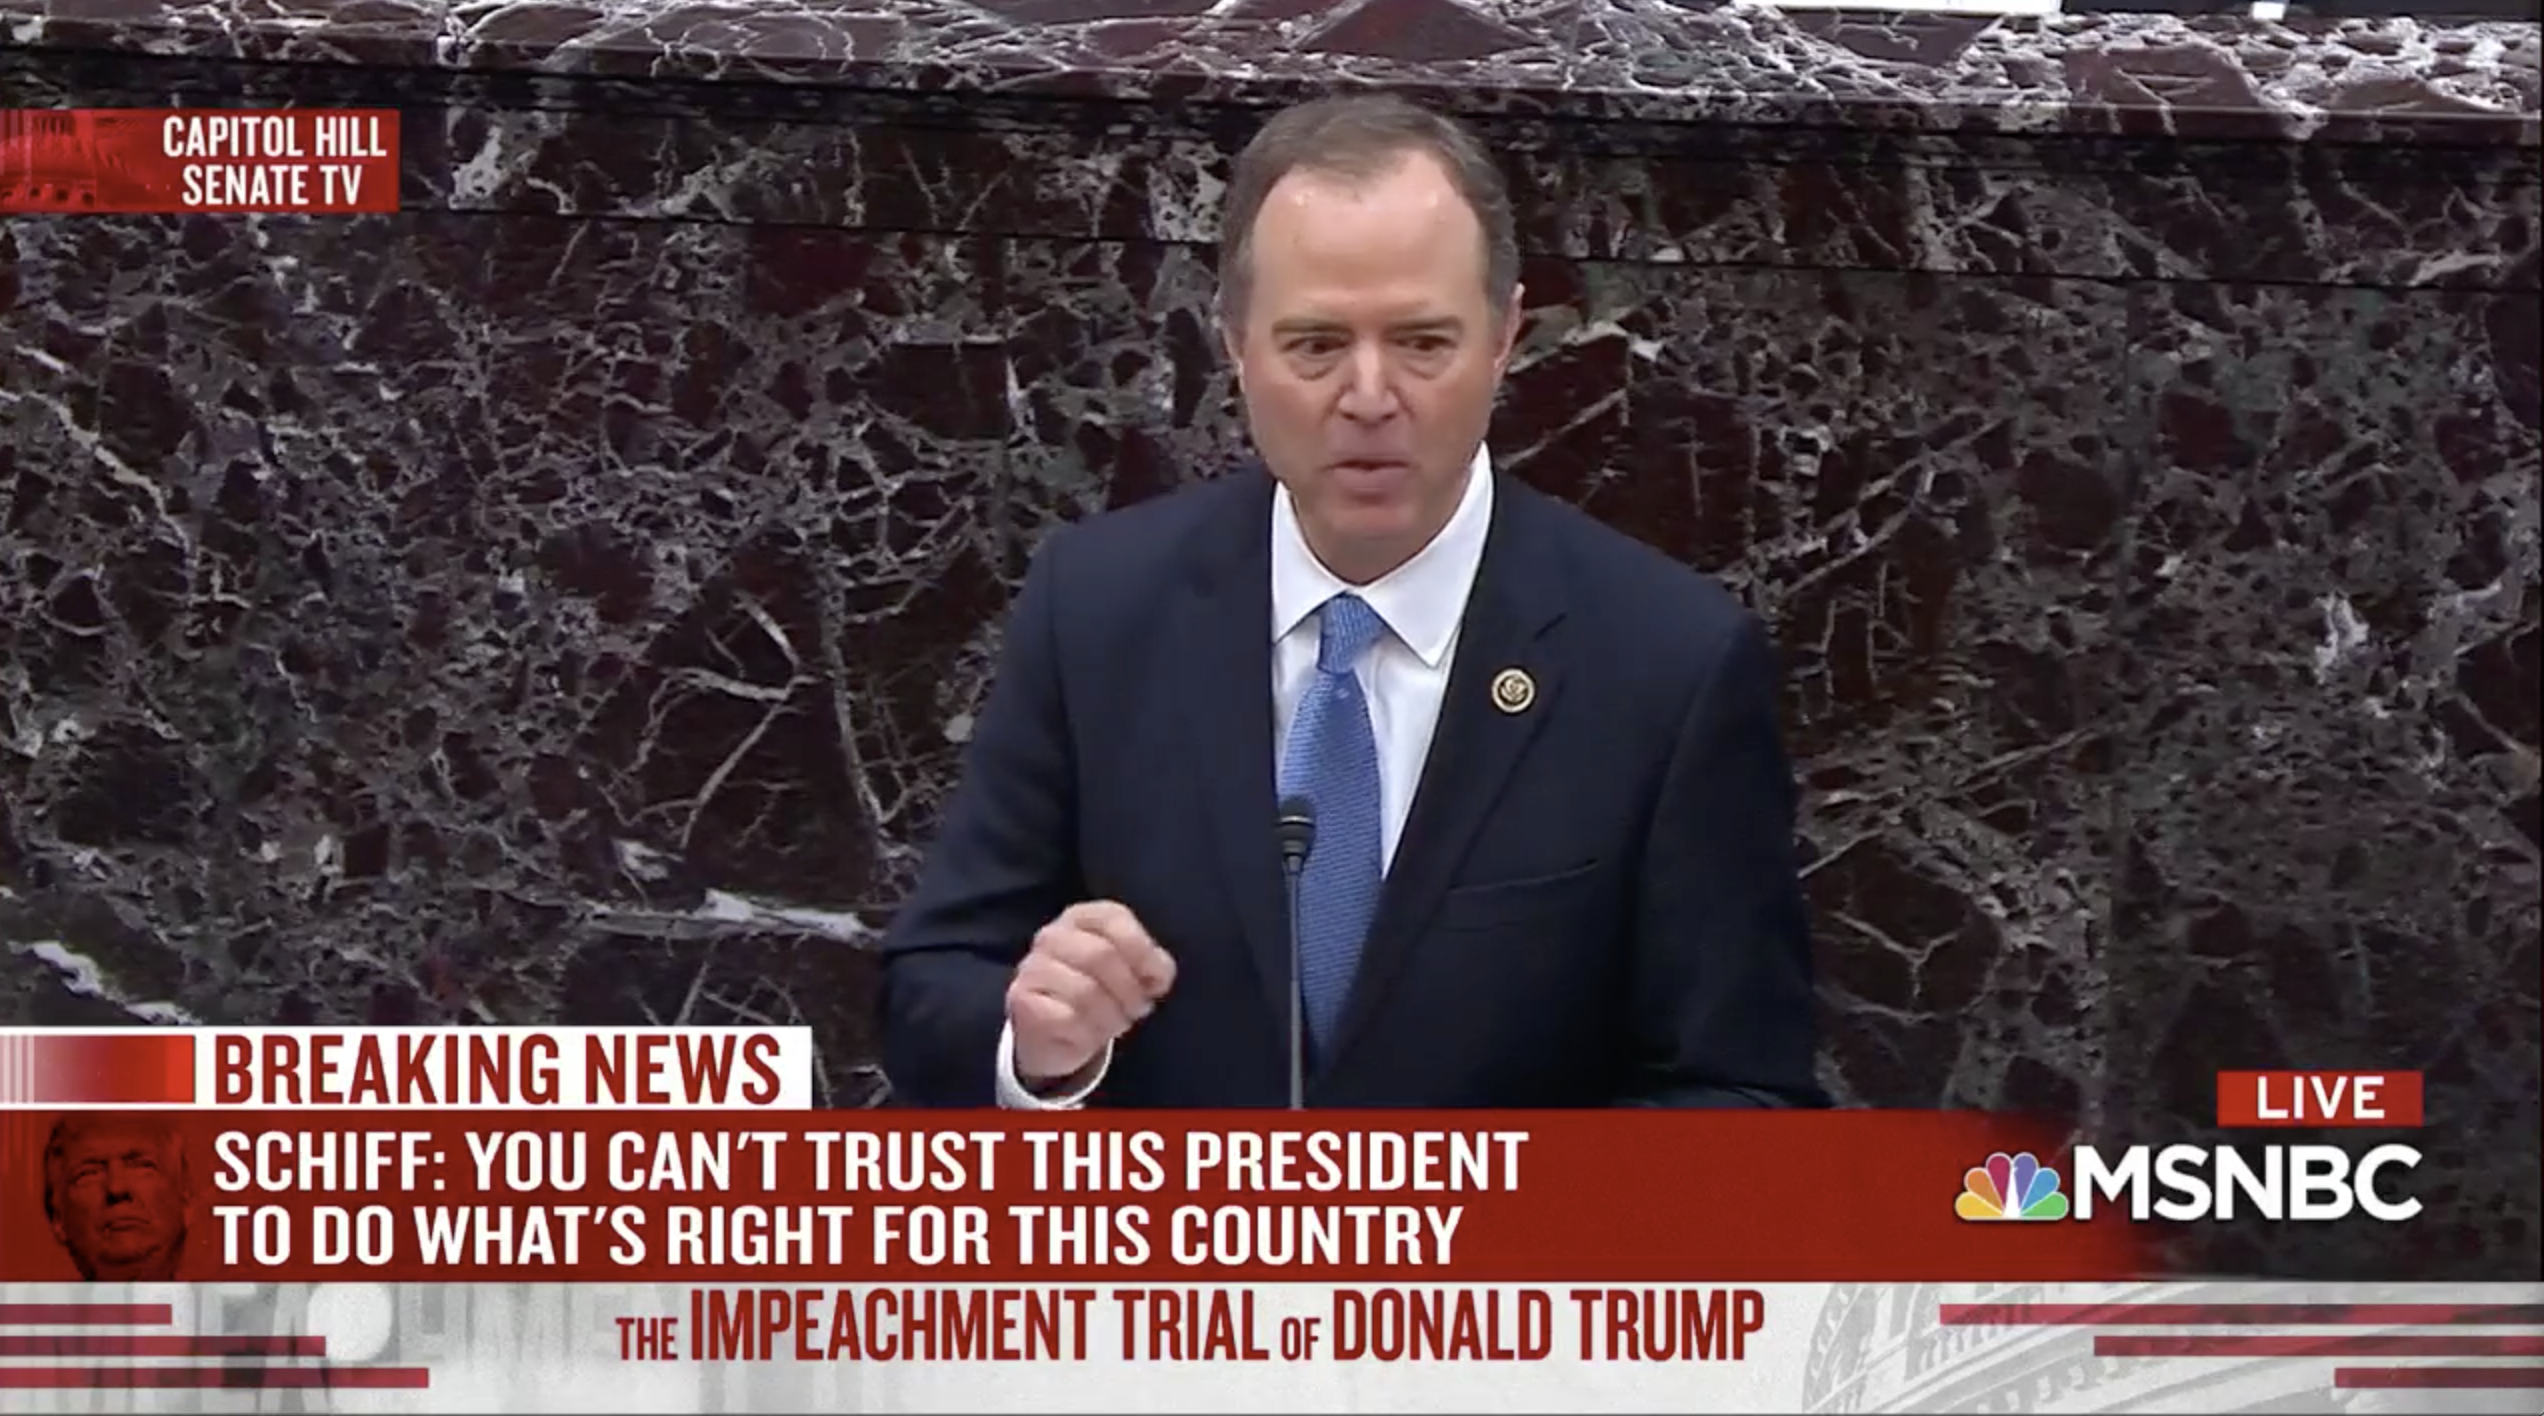 Adam Schiff Argues For Trump's Removal: 'If Truth Doesn't Matter, We're Lost'